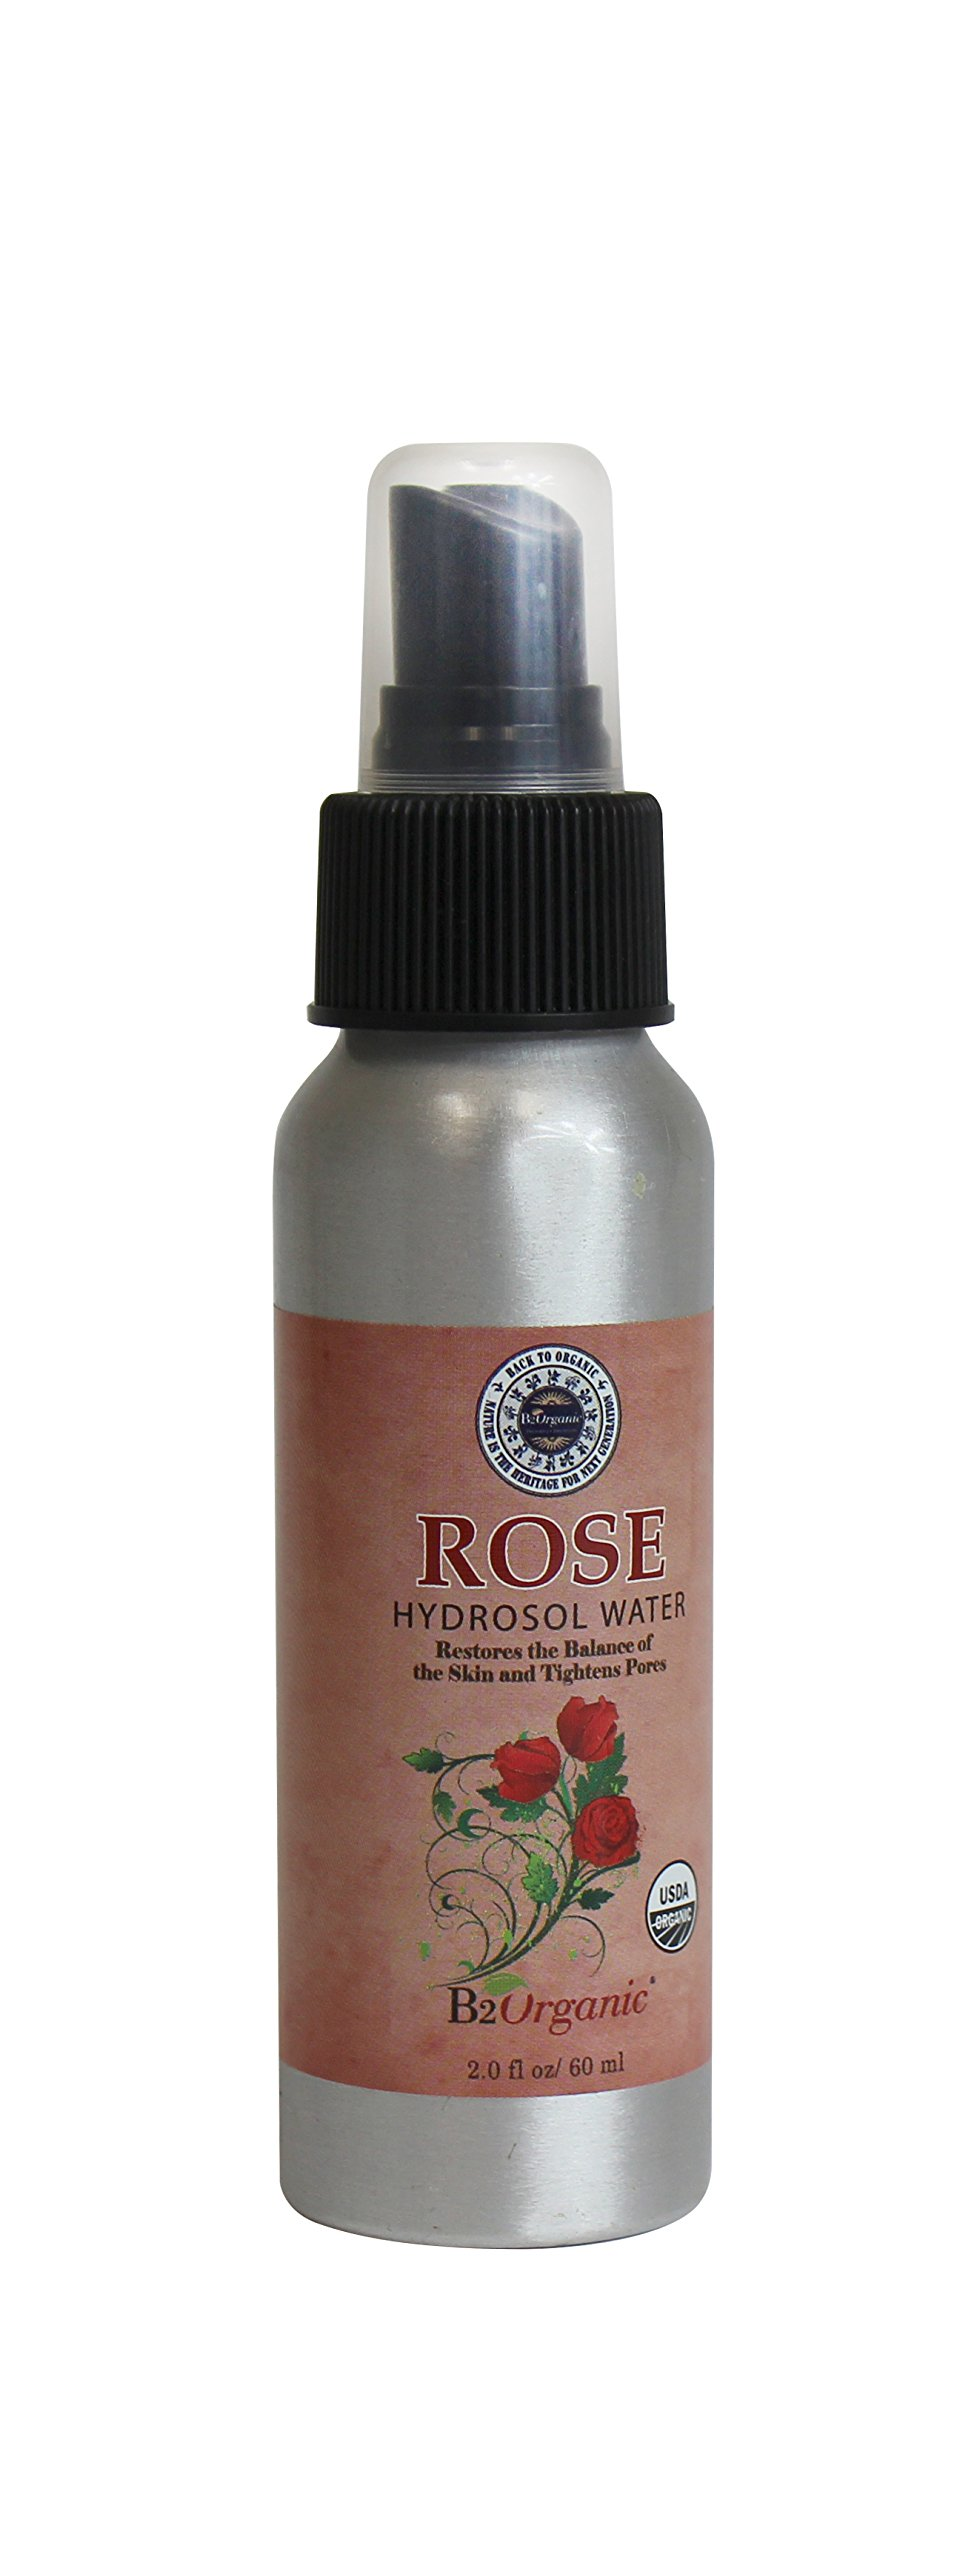 B2Organic Rose Hydrosol Water 2 ounce (Pack of 6)